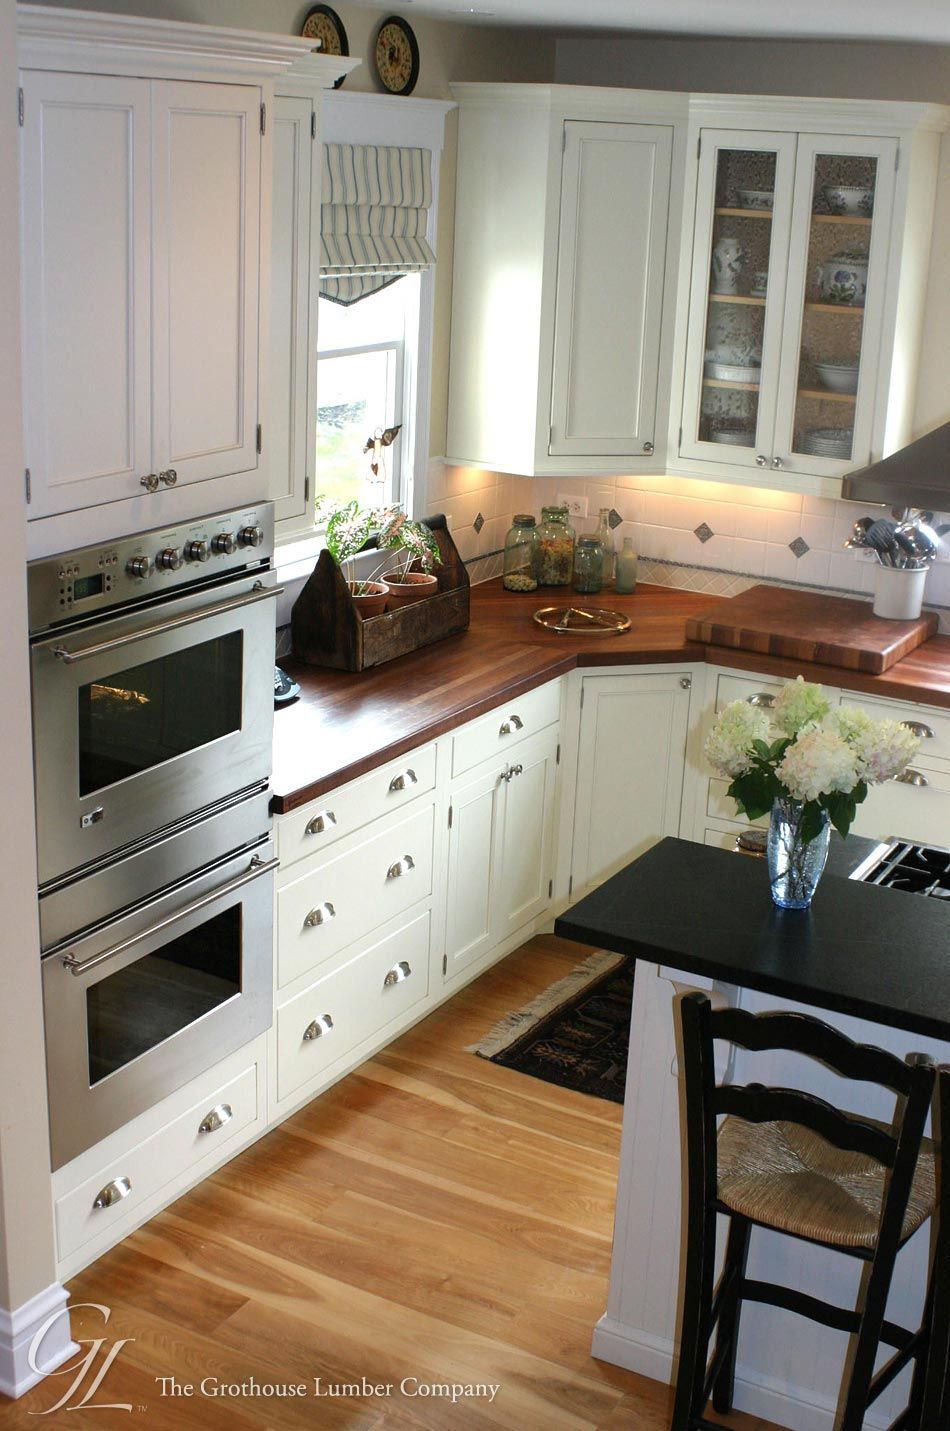 Kitchens With Wood Cabinets And Black Countertops